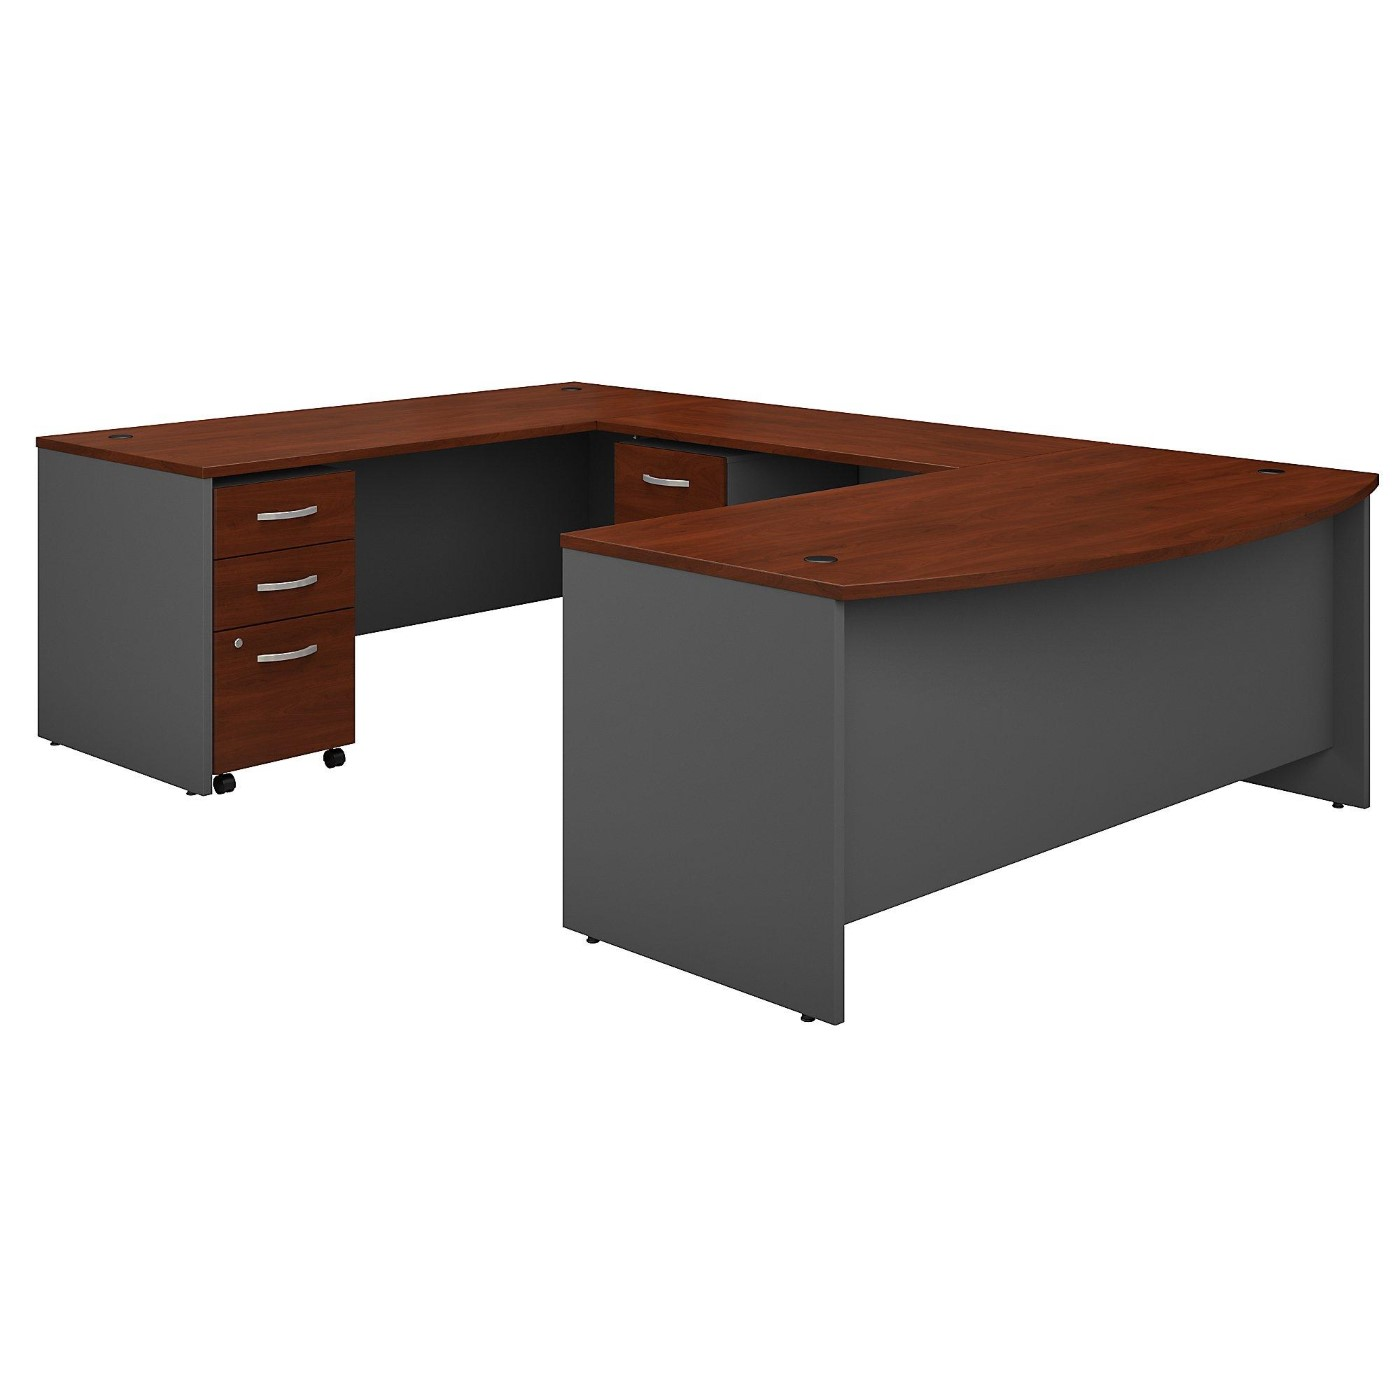 BUSH BUSINESS FURNITURE SERIES C 72W X 36D BOW FRONT U SHAPED DESK WITH MOBILE FILE CABINETS. FREE SHIPPING.